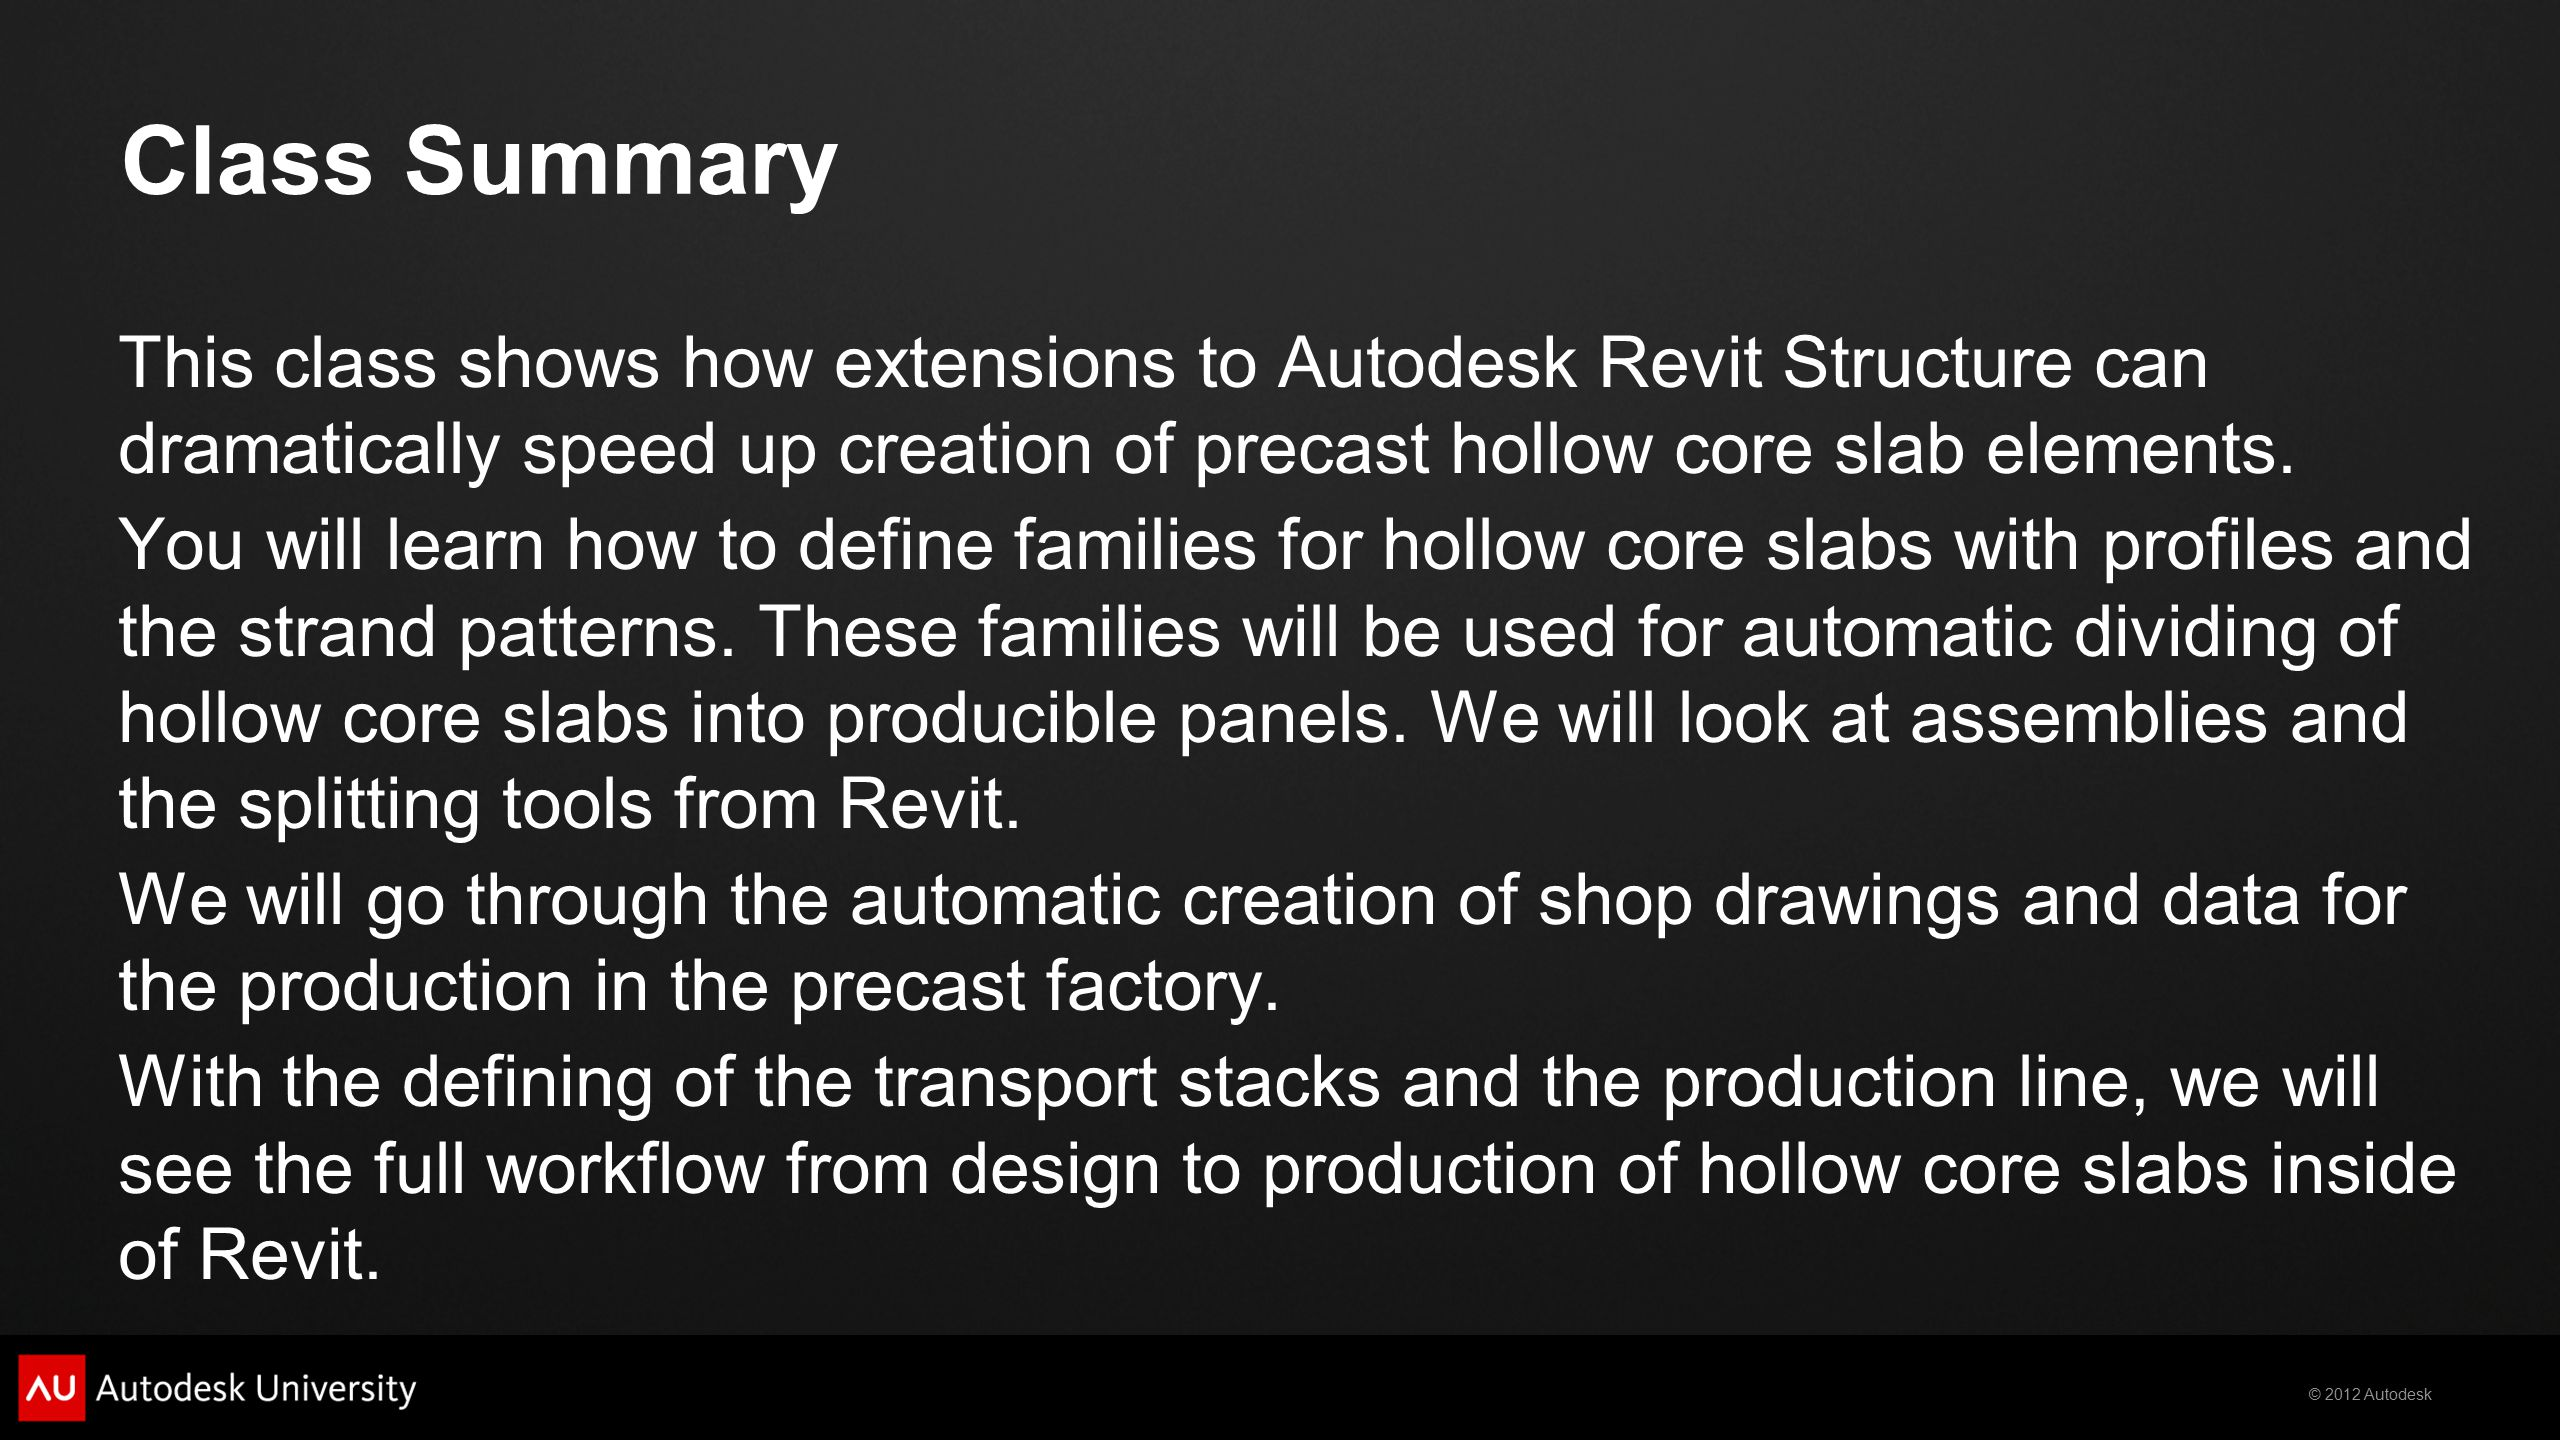 Class Summary This class shows how extensions to Autodesk Revit Structure can dramatically speed up creation of precast hollow core slab elements.